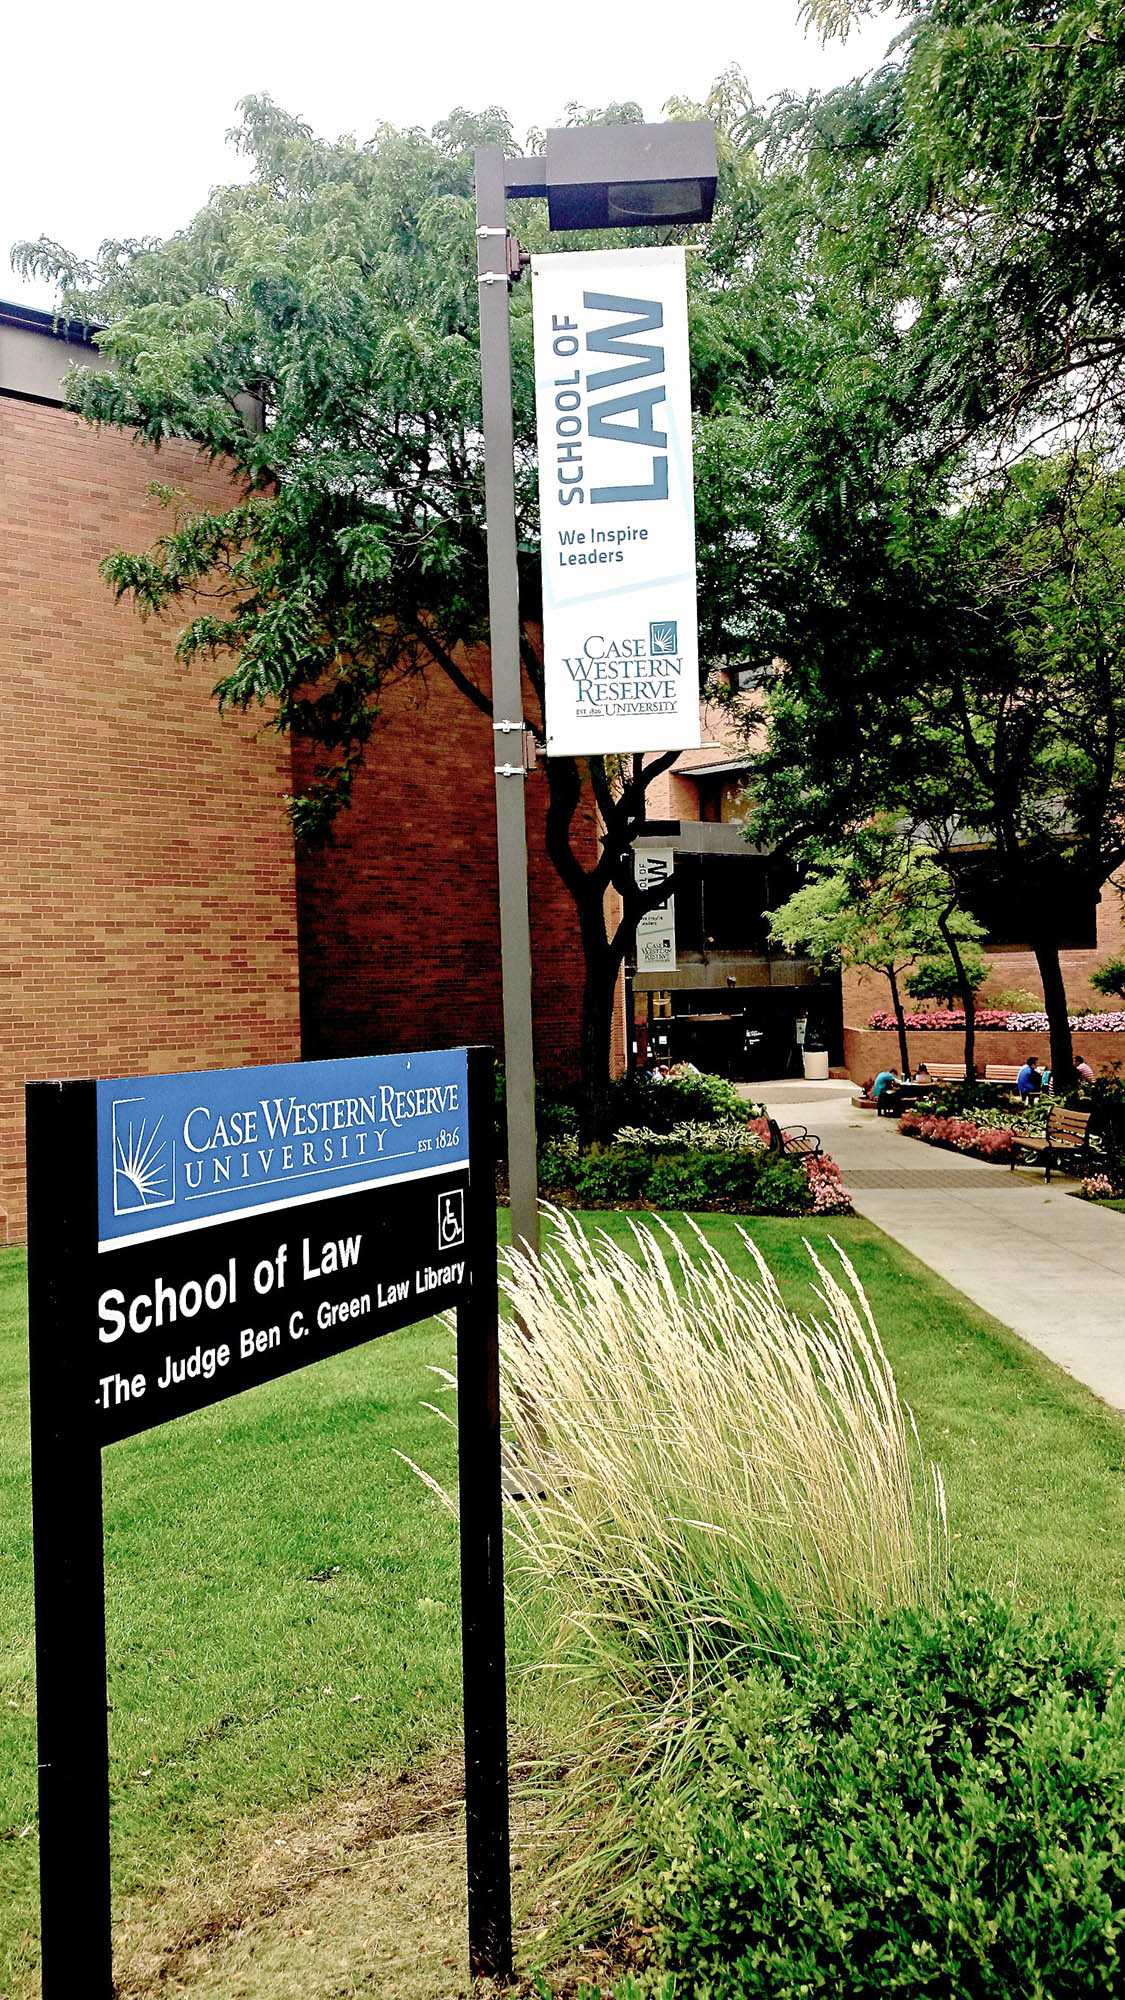 Bucking the national trend, the CWRU School of Law saw an increase in applications this past year.